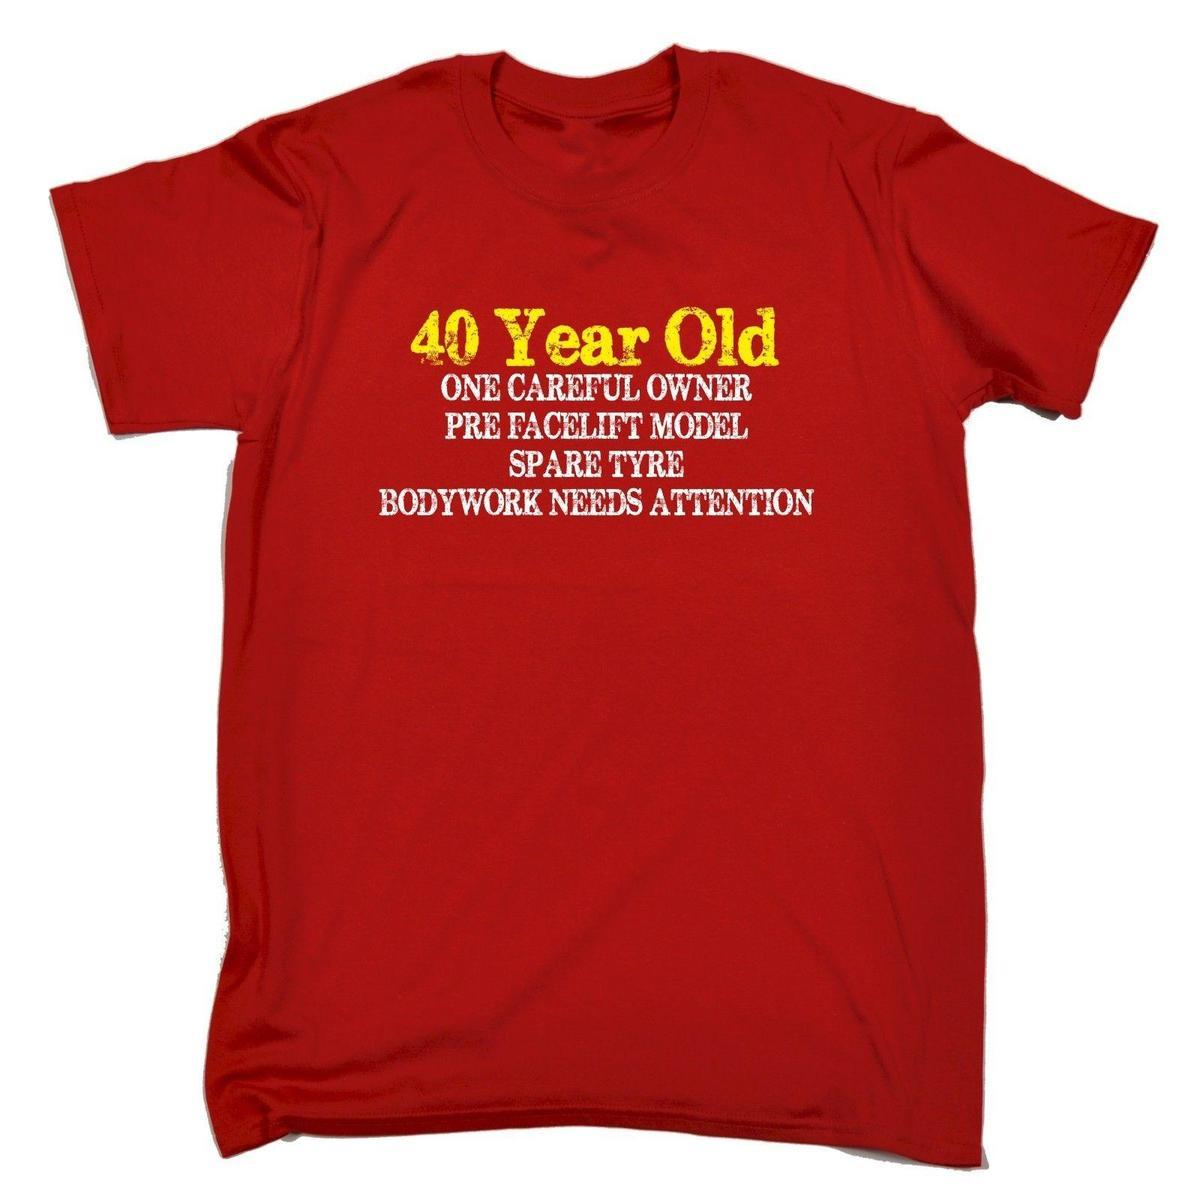 40 Year Old One Careful Owner T SHIRT Tee Birthday Gift Joke 7 Shirt Funny Rude Shirts From Amesion33 1208